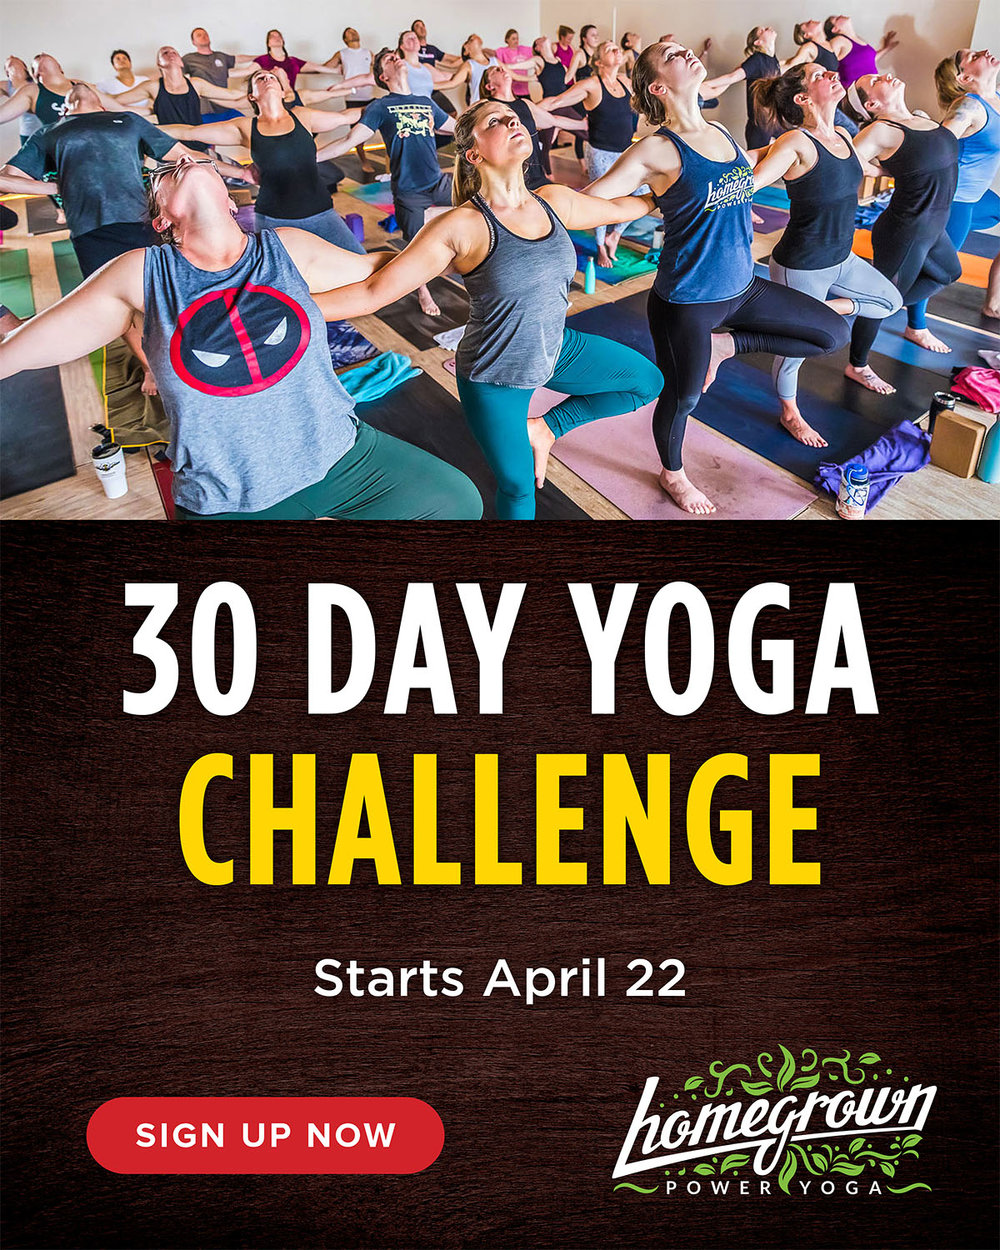 30 Day Yoga Challenge FB Poster.jpg